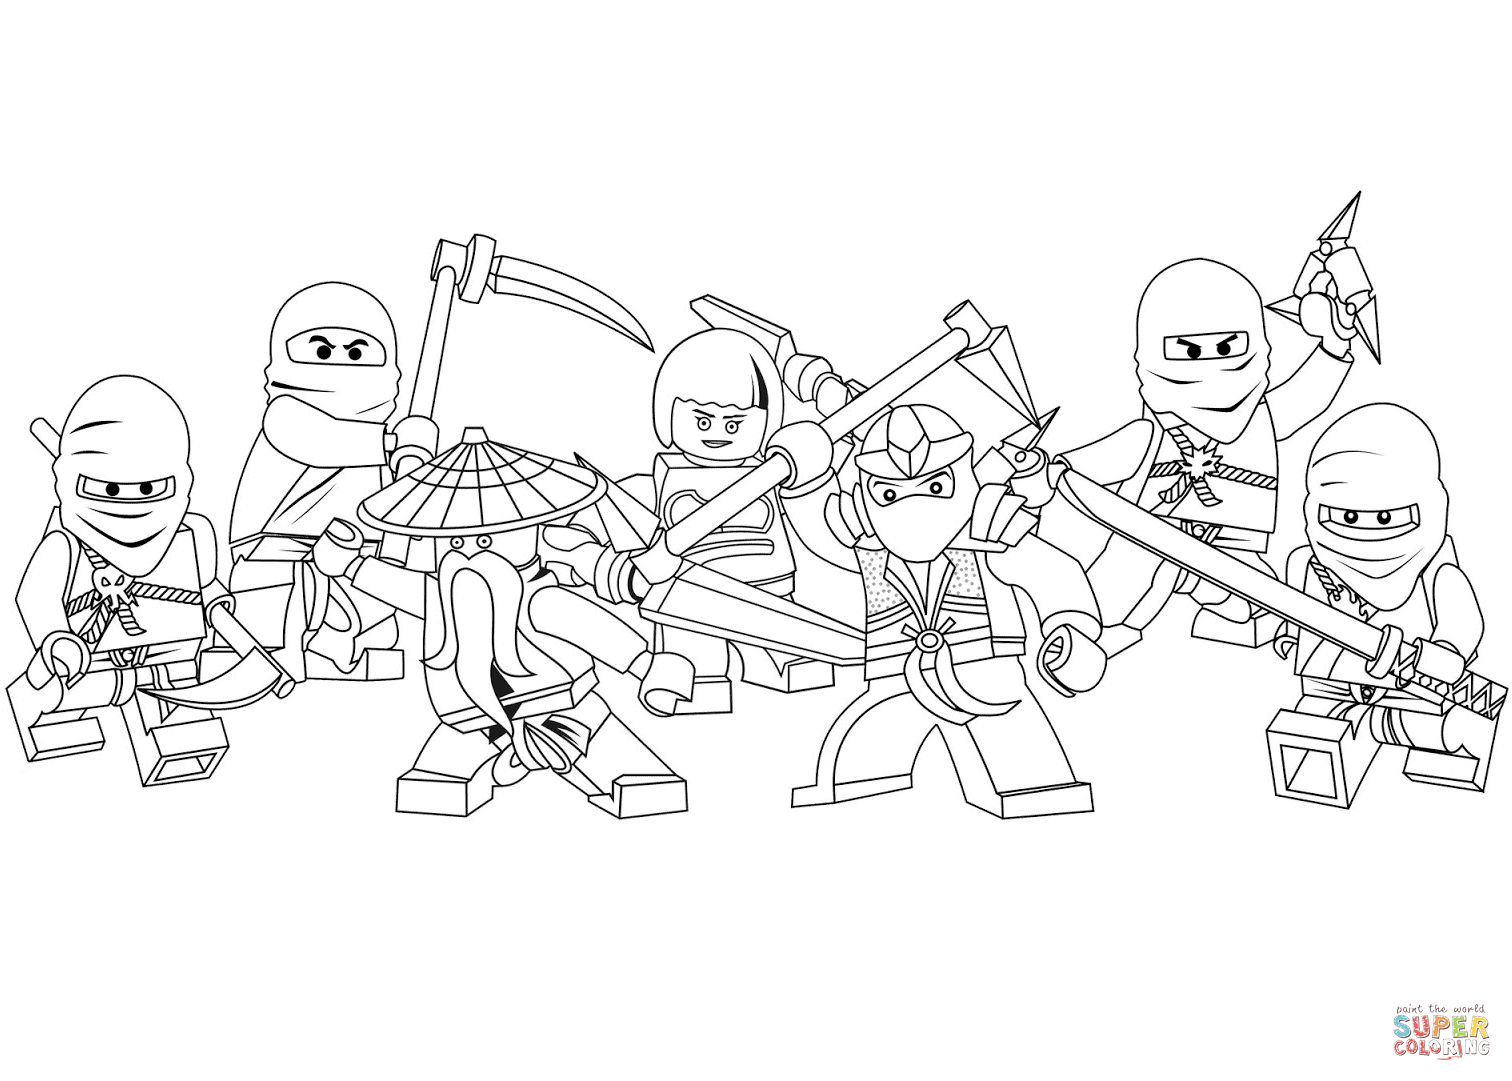 Lego Ninjago Coloring Page Free Printable Coloring Pages